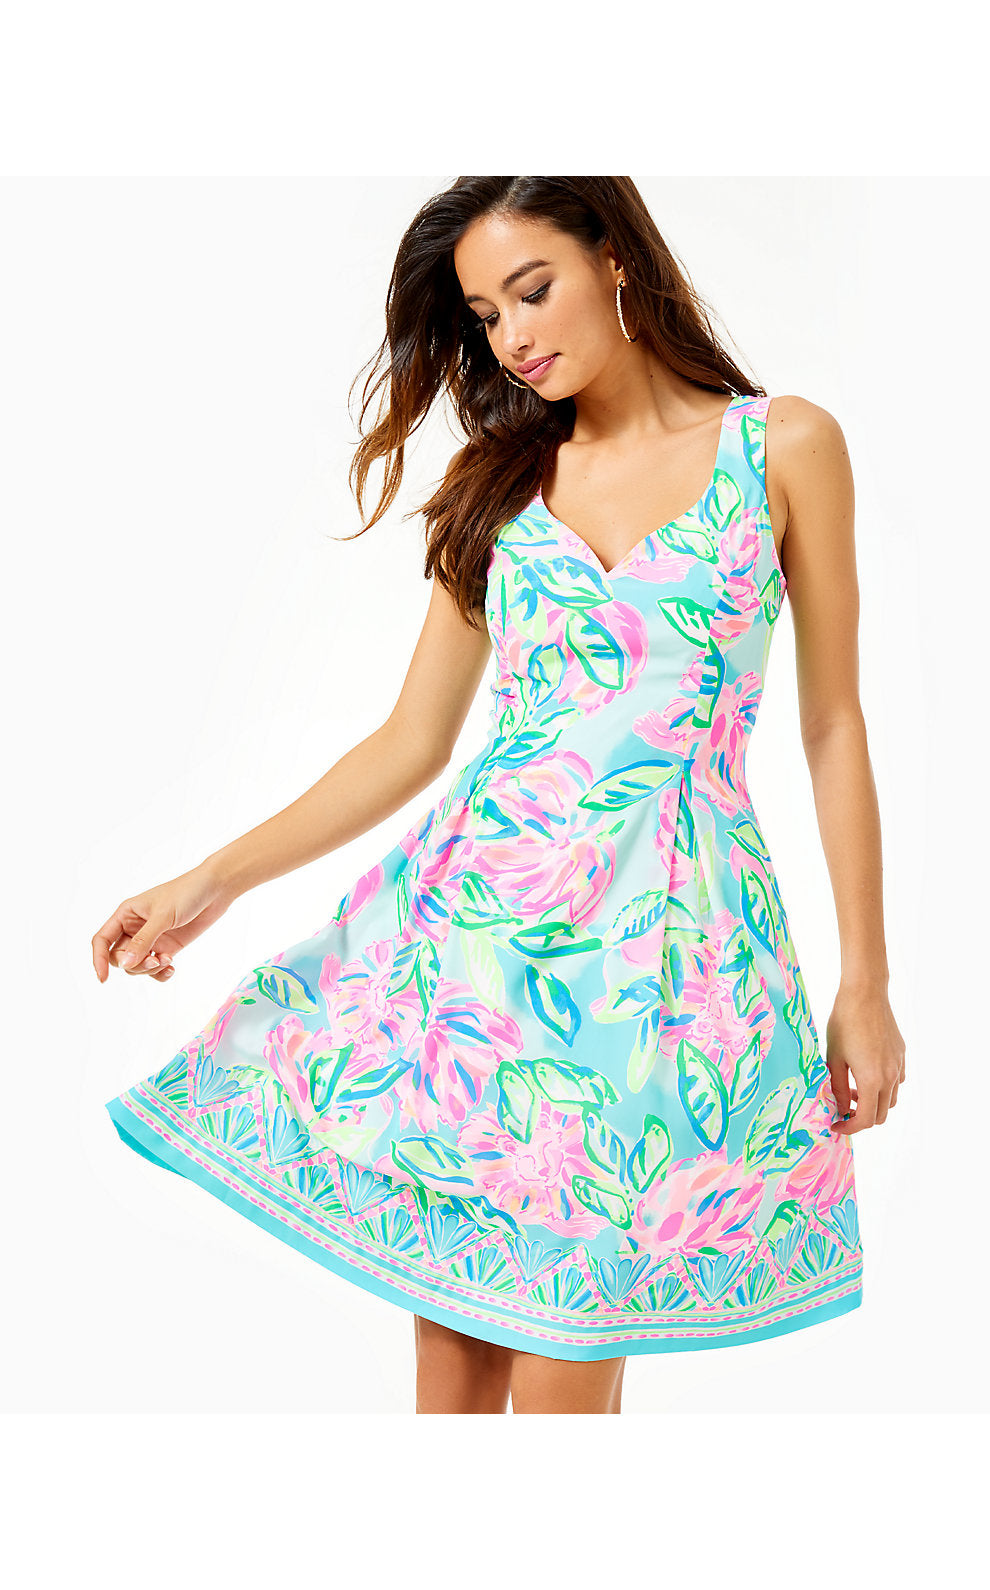 Linnet Stretch Dress Multi Totally Blossom